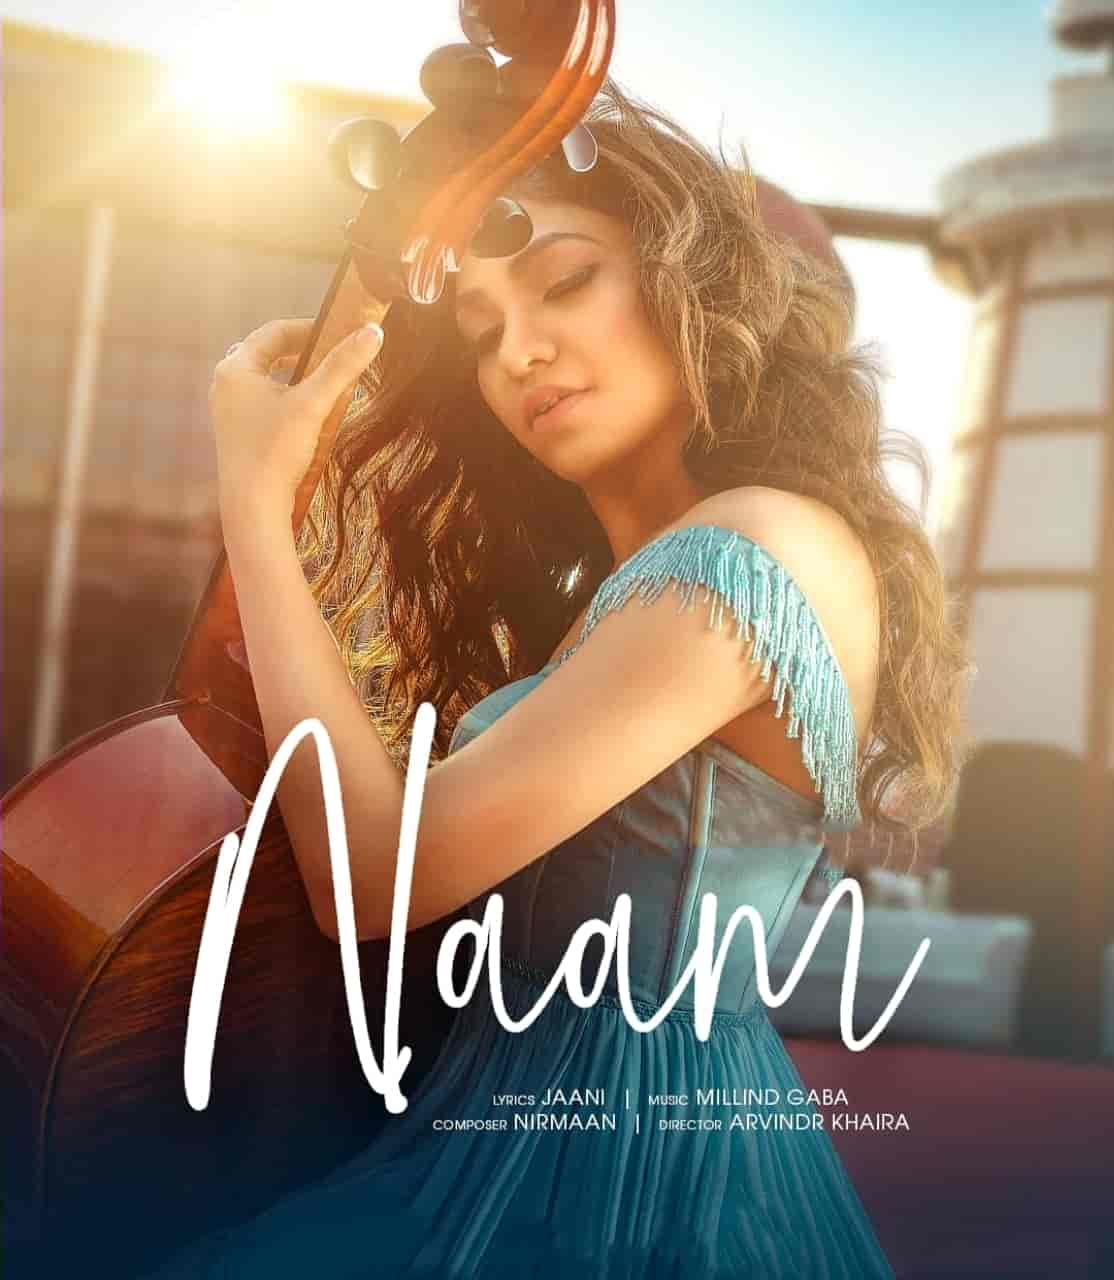 Naam Romantic Song Image By Tulsi Kumar and Millind